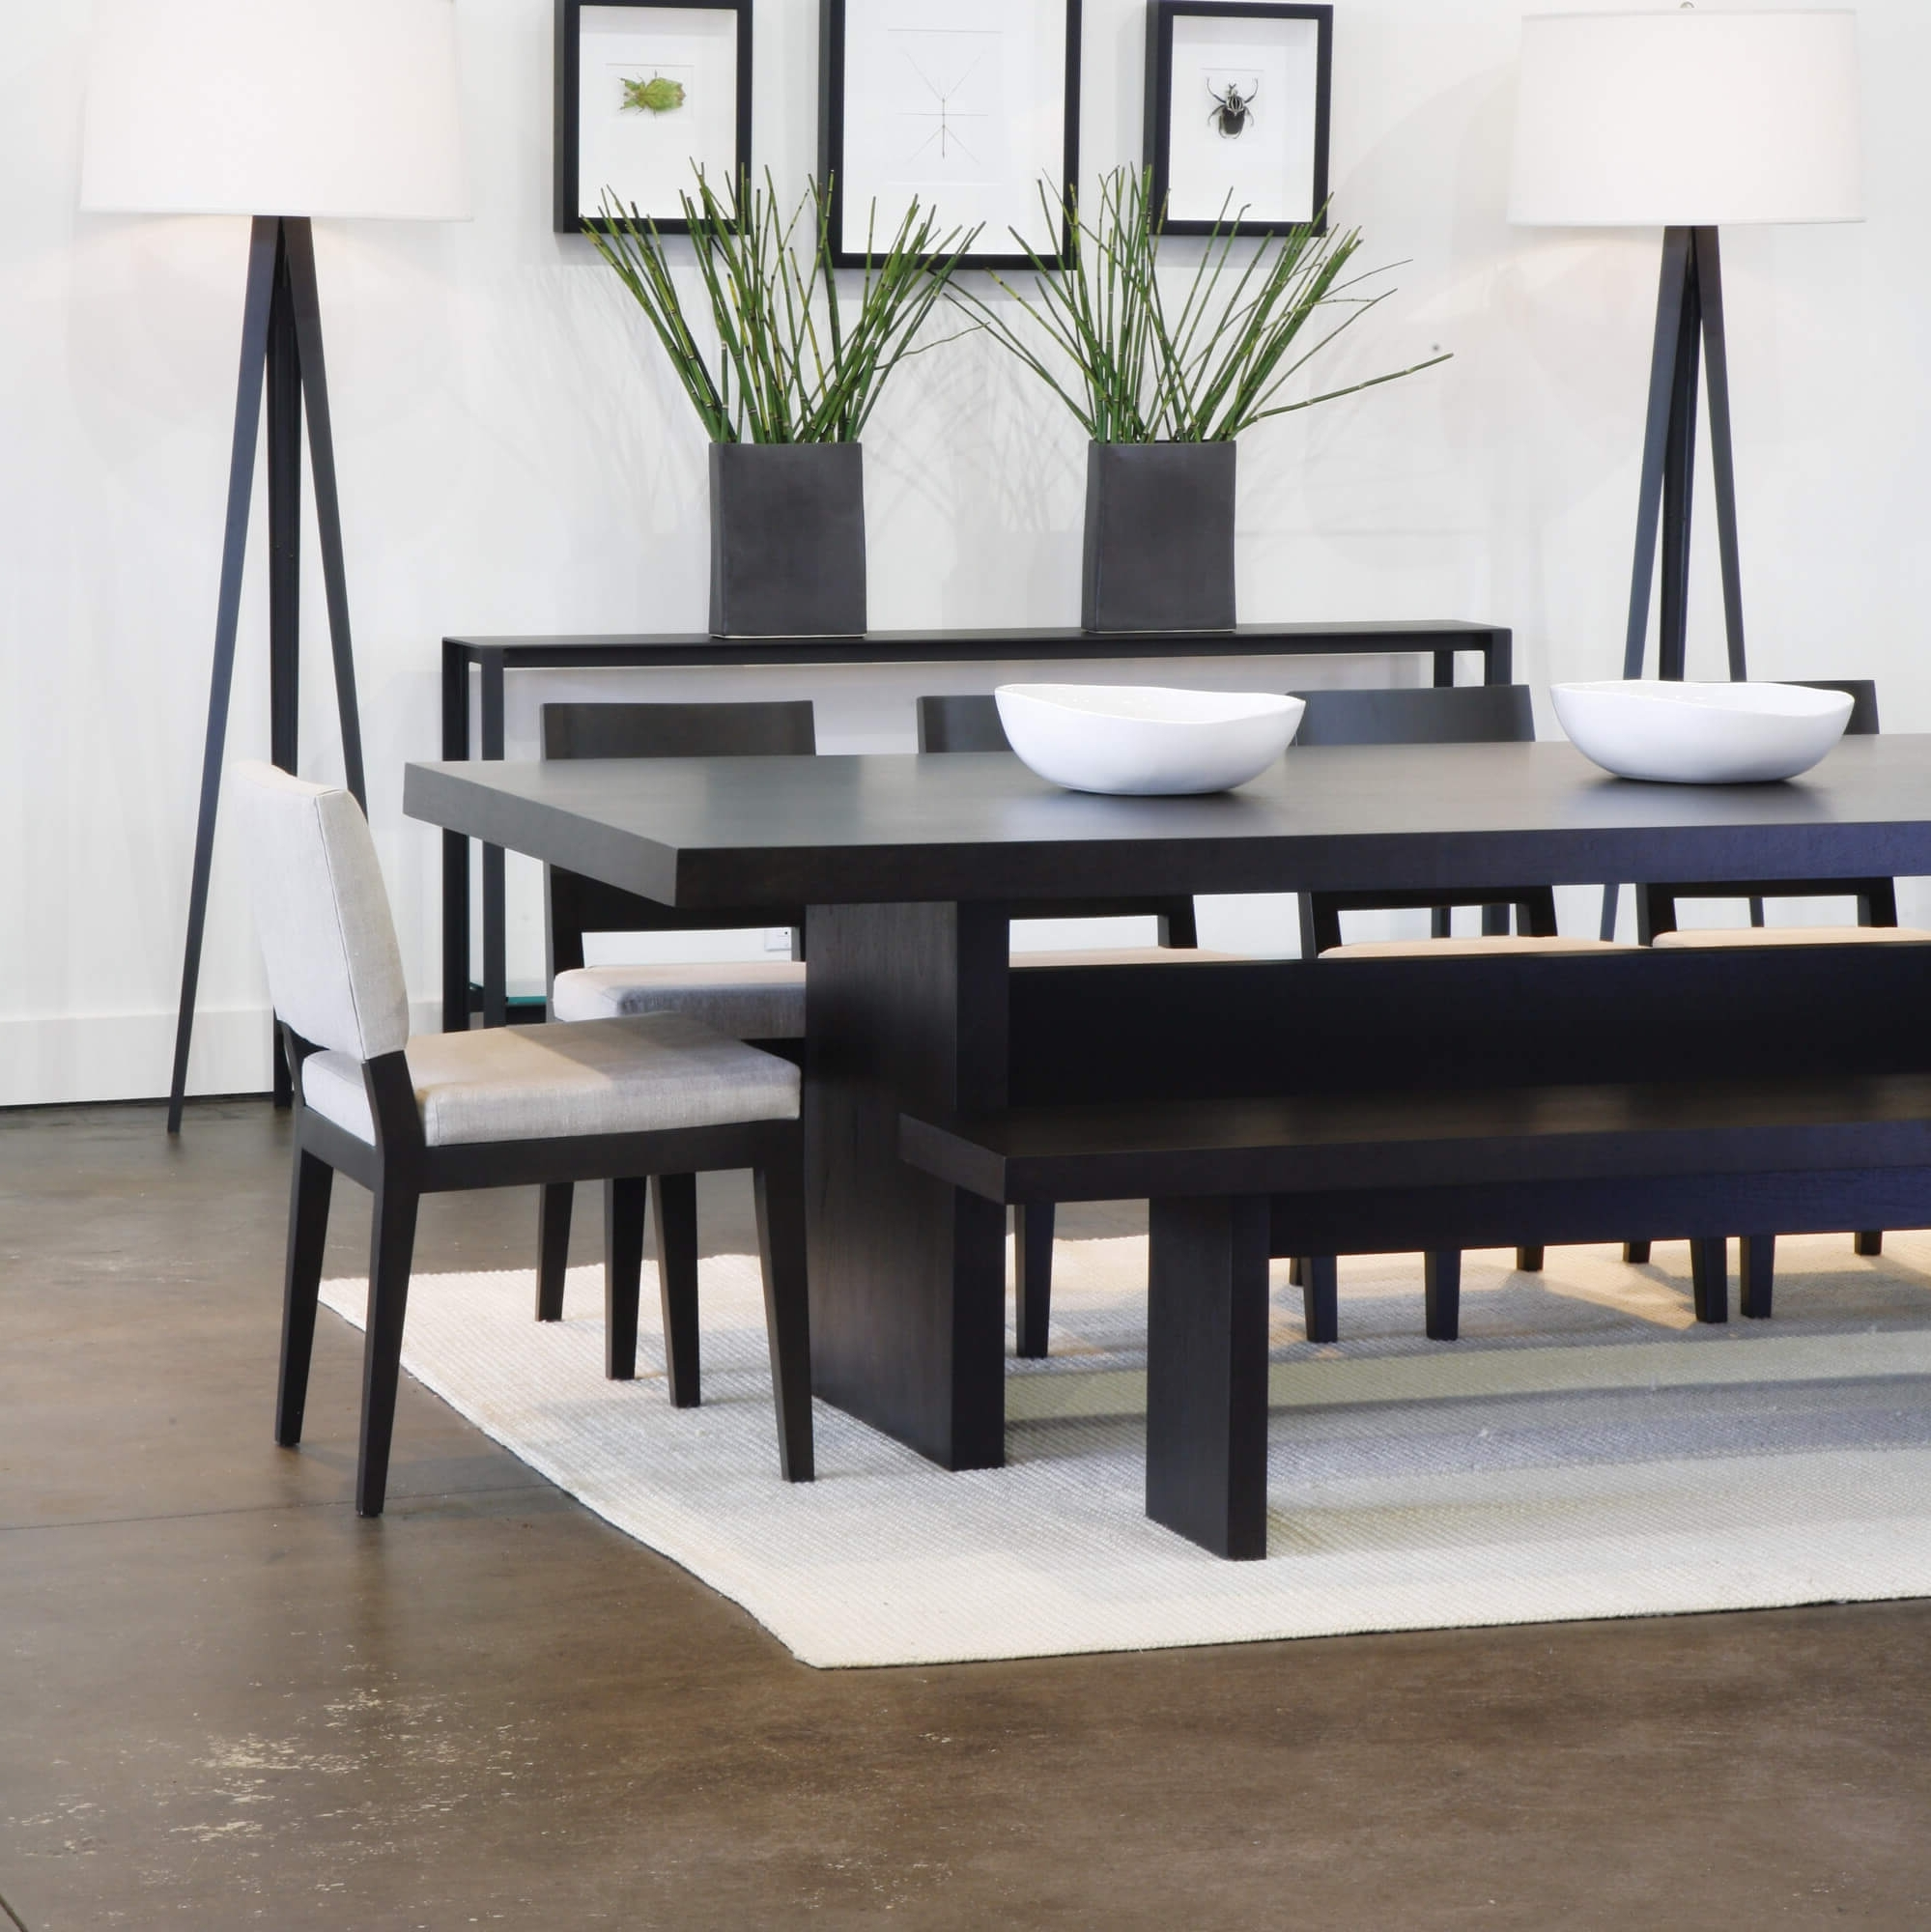 26 Dining Room Sets (Big And Small) With Bench Seating (2018) Throughout Widely Used Contemporary Dining Tables Sets (View 11 of 25)